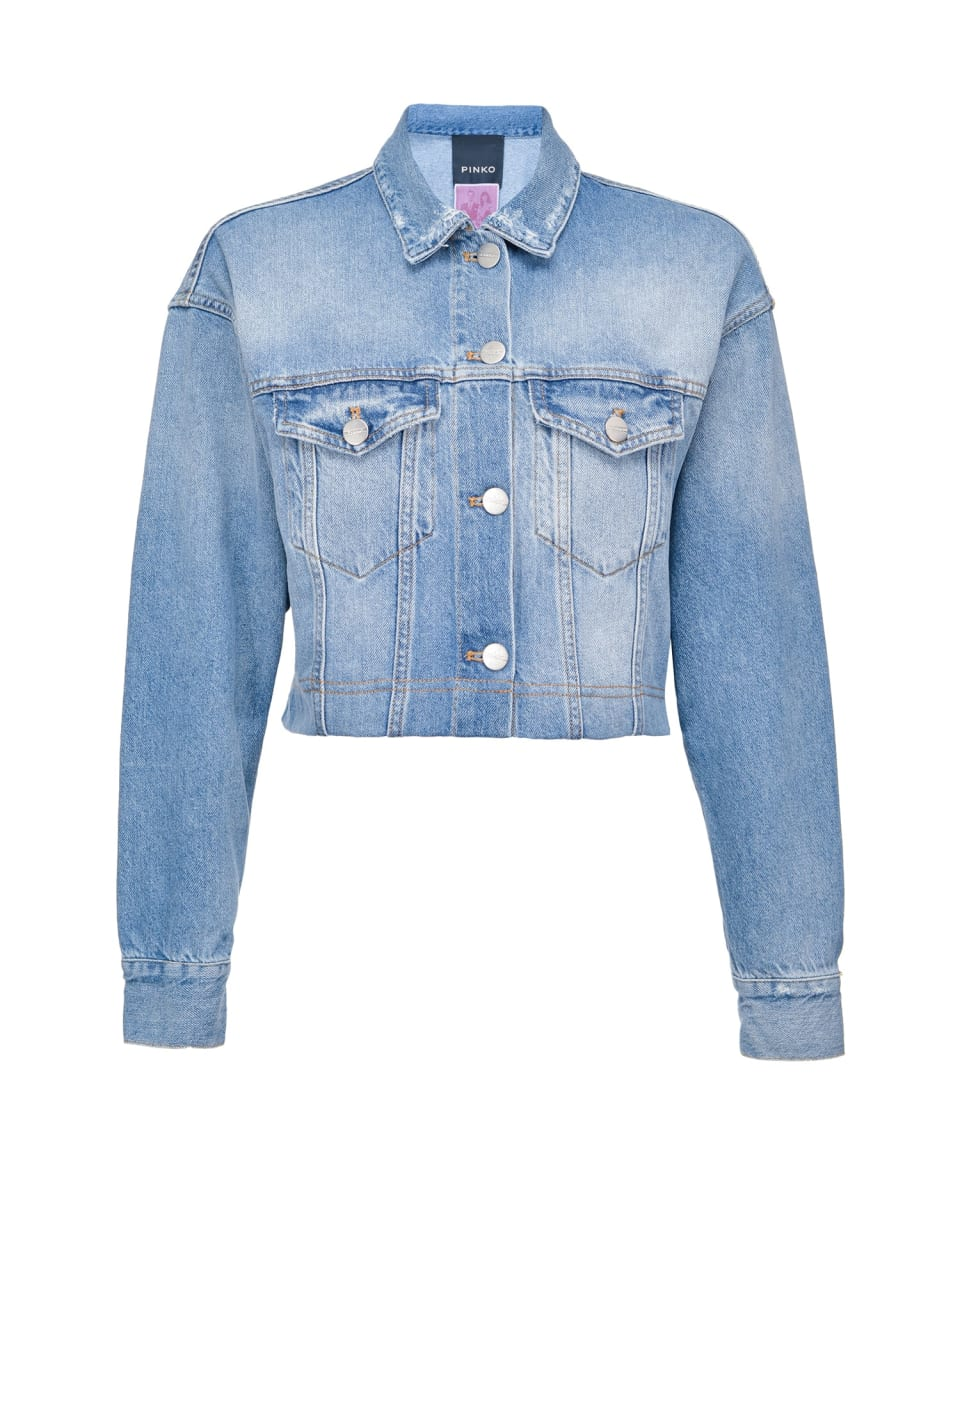 REIMAGINE denim jacket - Pinko